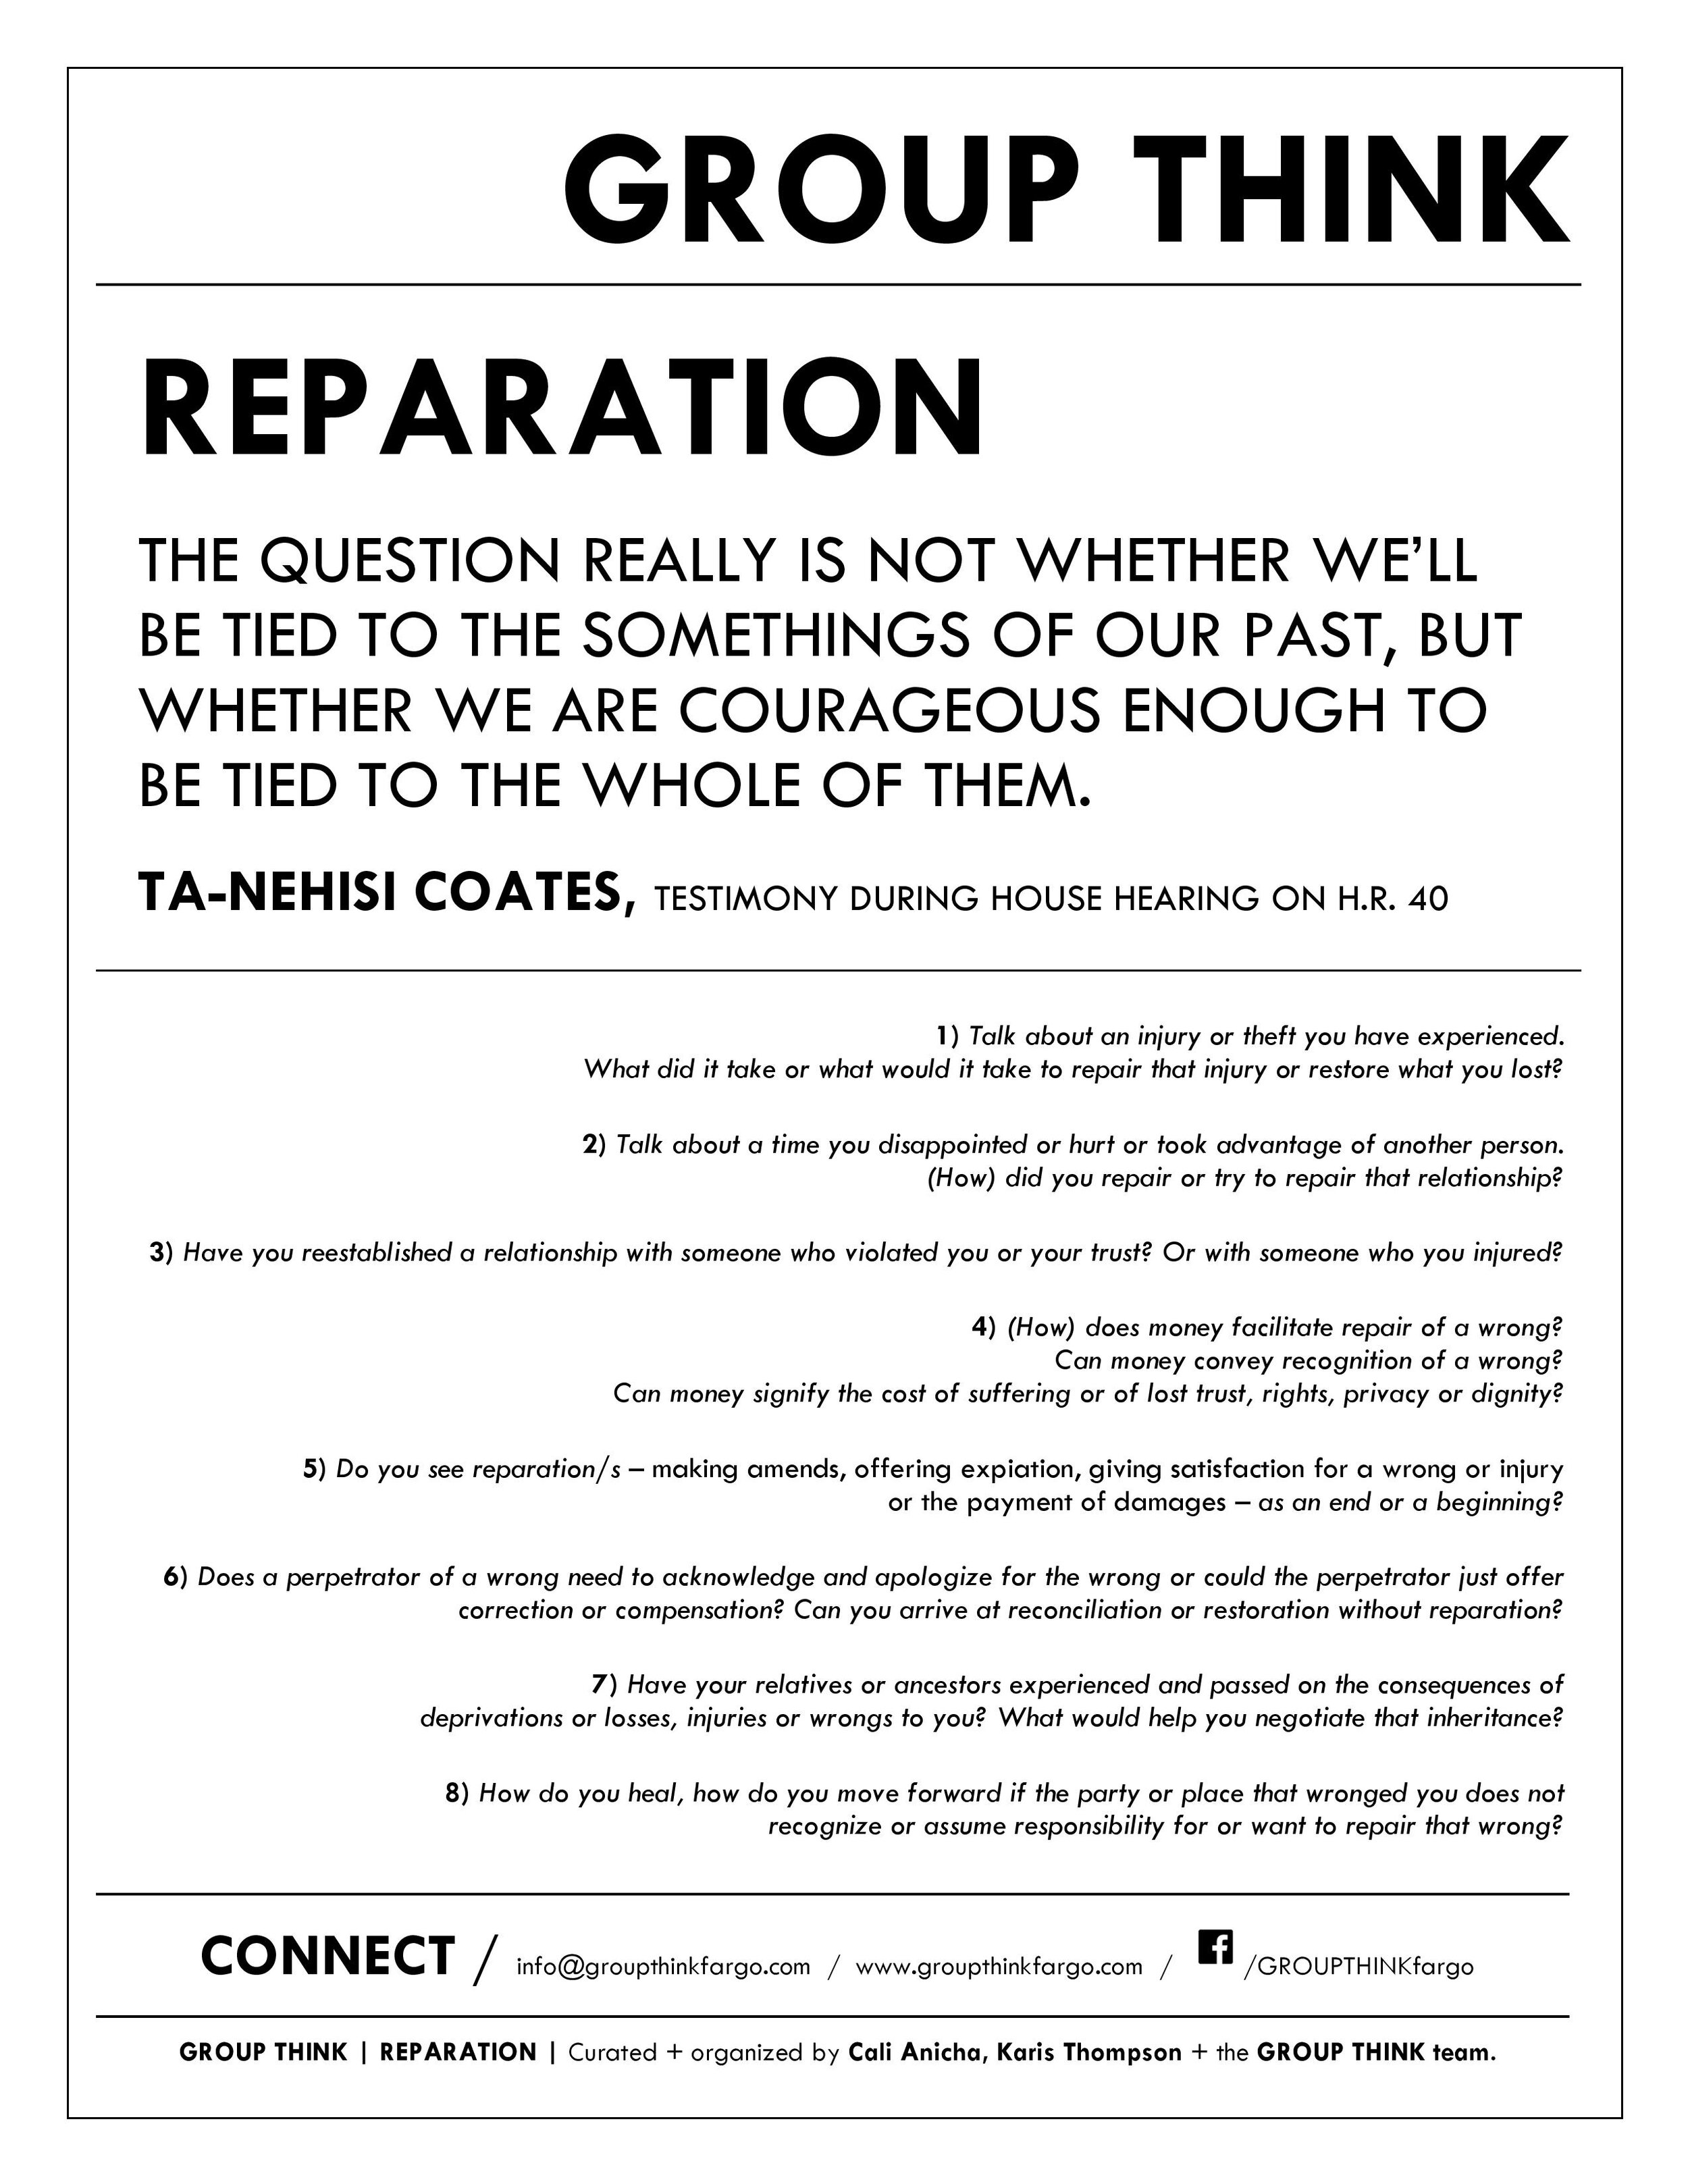 GROUP THINK - 10.2019 - REPARATION handout-1.jpg